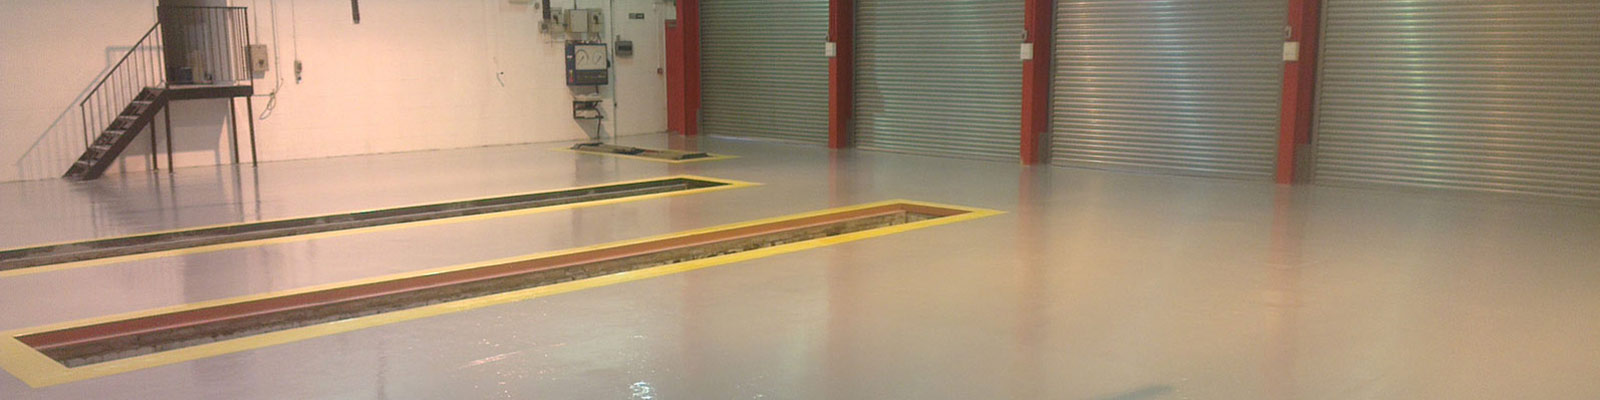 Floor Preparation and Floor Coatings - Specialists working to the highest standards